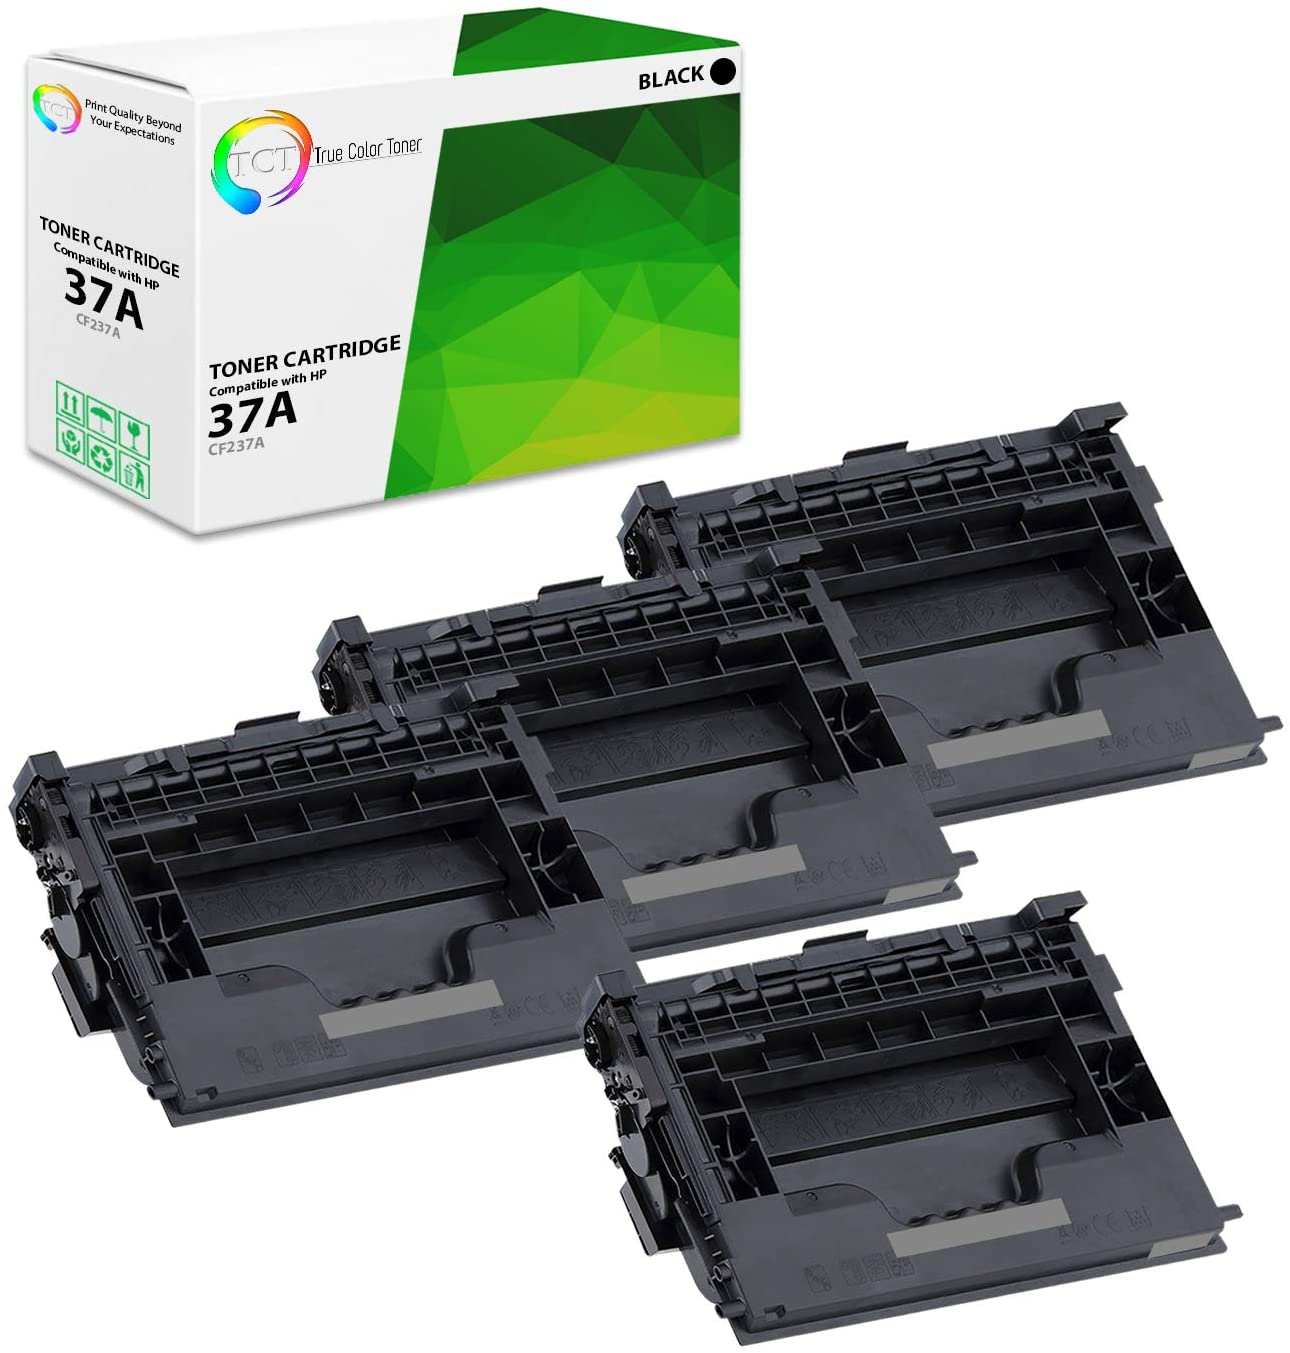 TCT Premium Compatible Toner Cartridge Replacement for HP 37A CF237A Black Works with HP Laserjet Enterprise M607 M607n M607dn M609dn, MFP M631 M633 Series Printers Printers (11,000 Pages) - 4 Pack